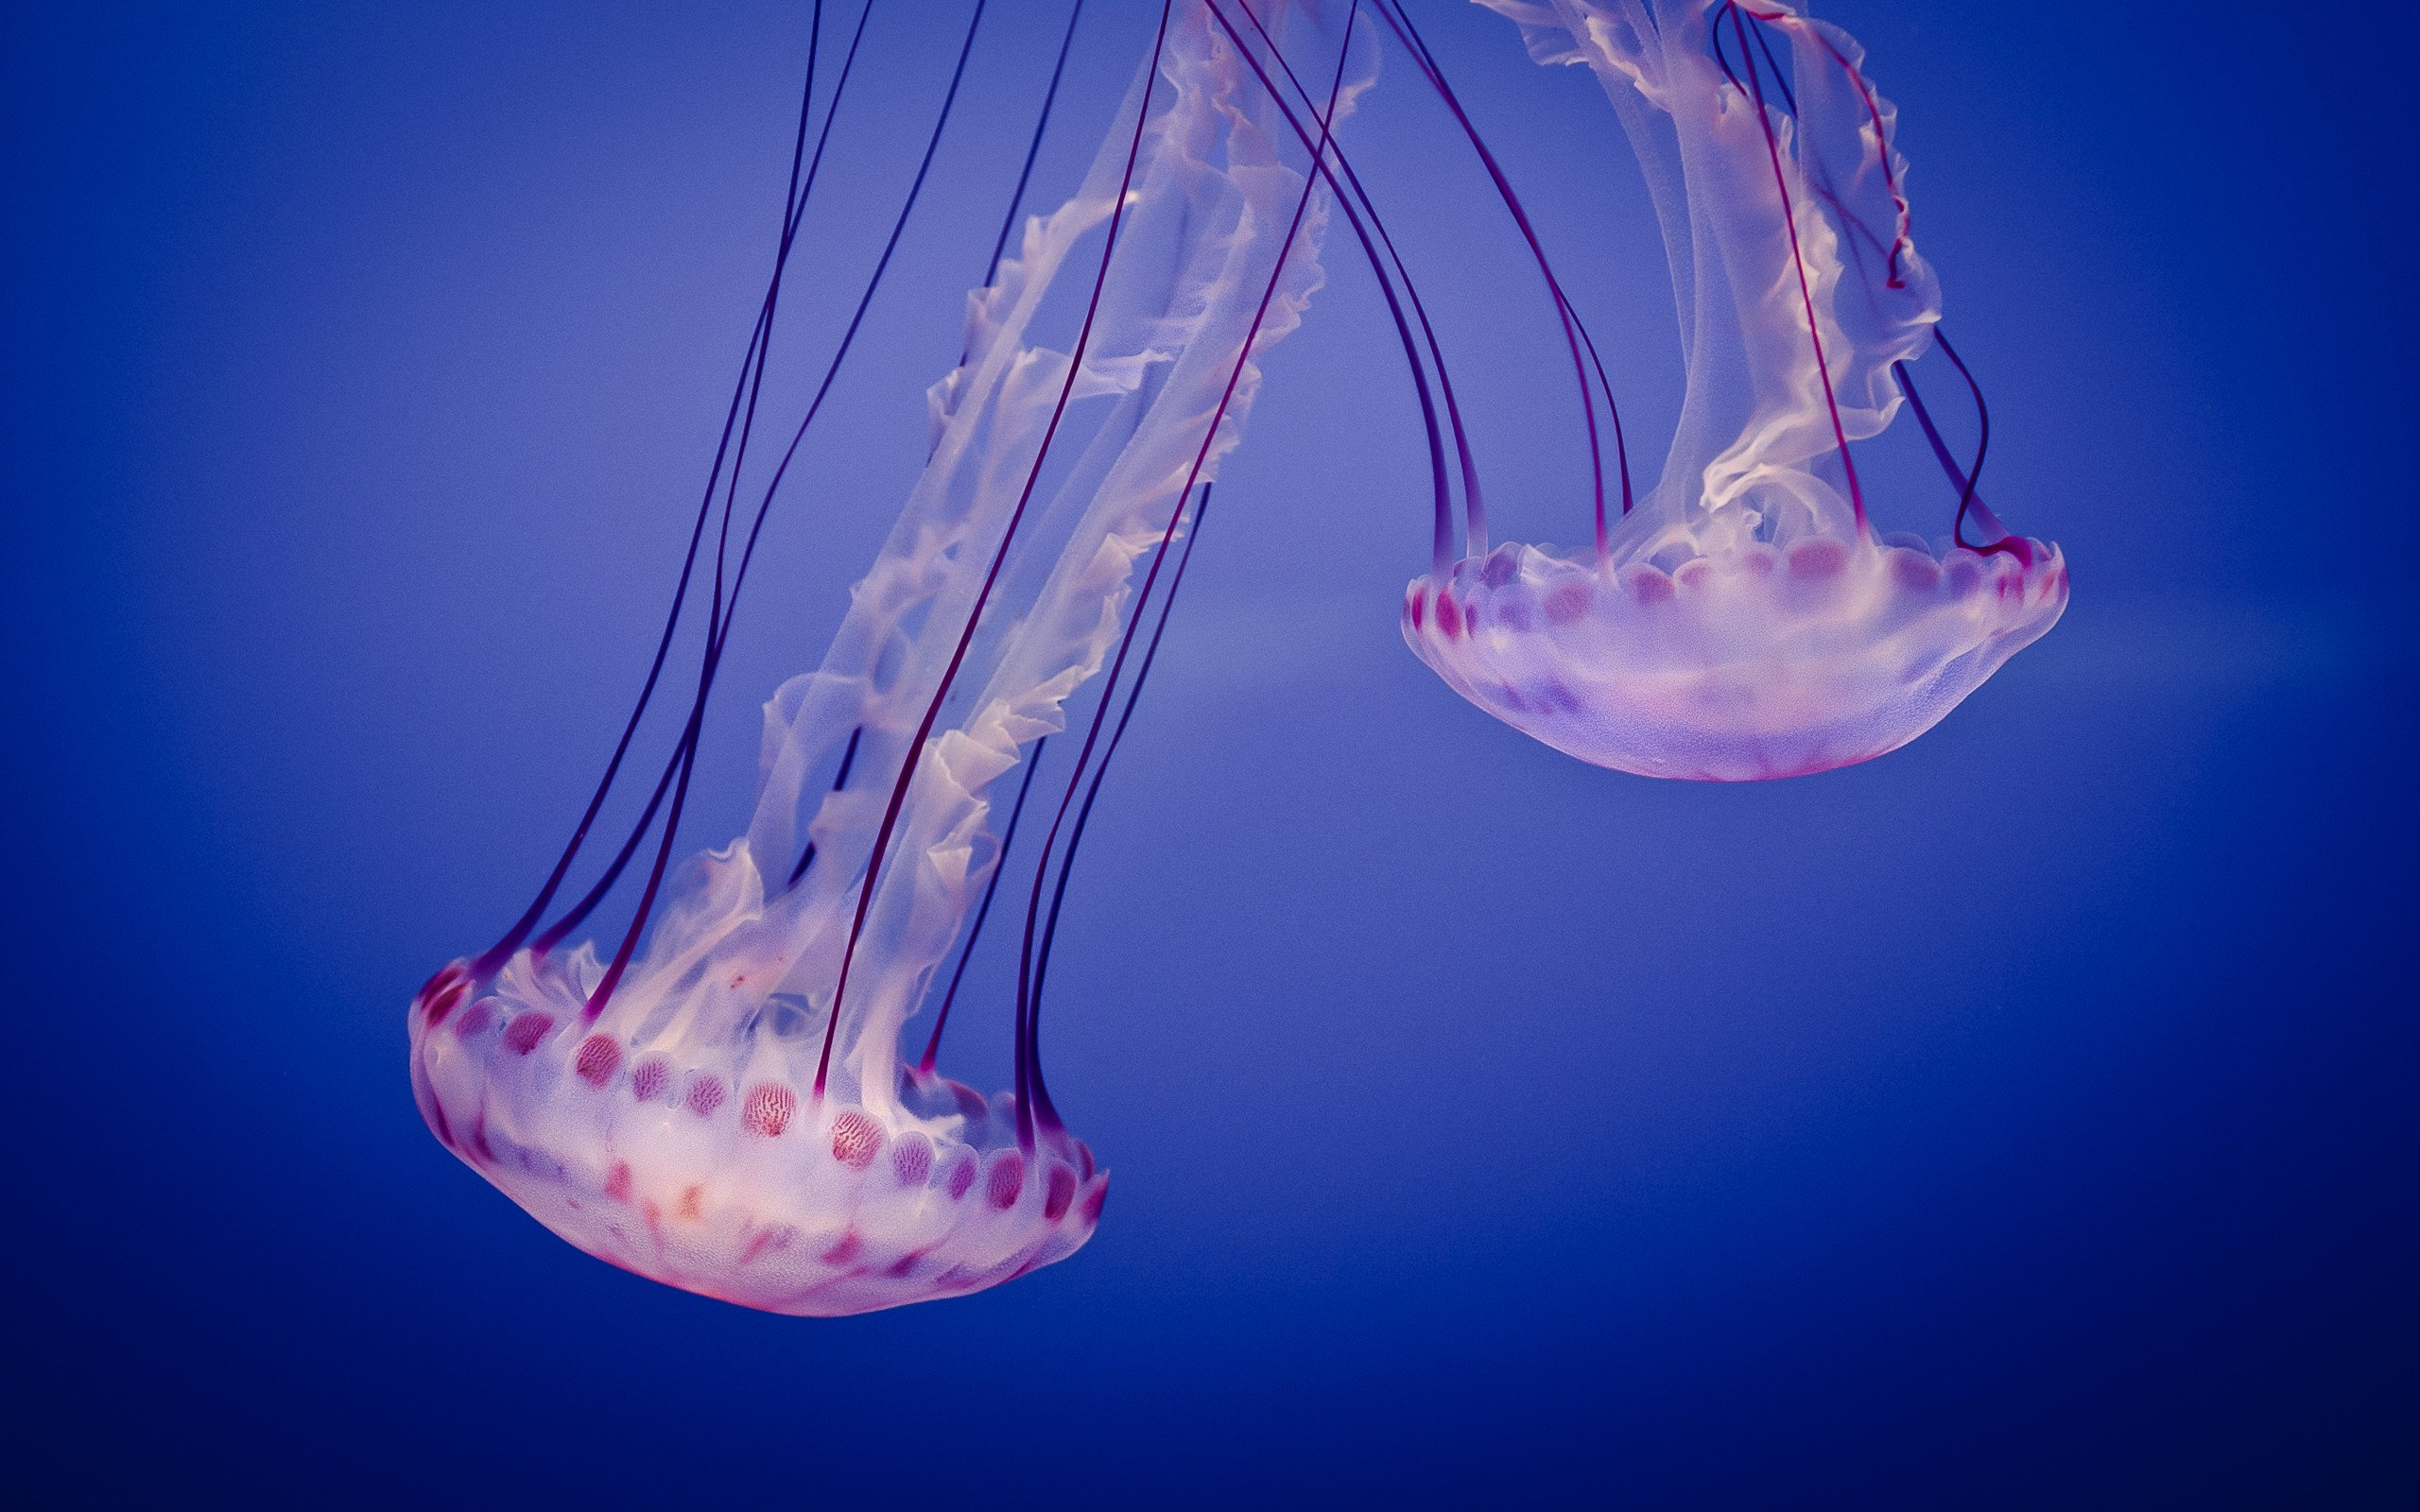 Two jellyfish hd wallpaper hd latest wallpapers - Jellyfish hd images ...